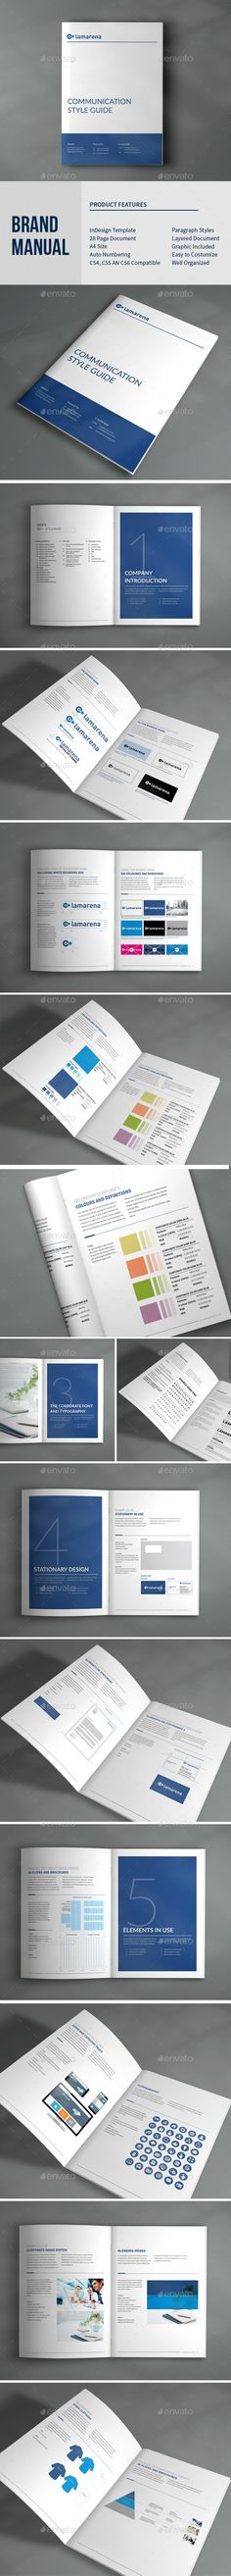 Brand Manual Brand manual, Corporate brochure and Template - it manual template